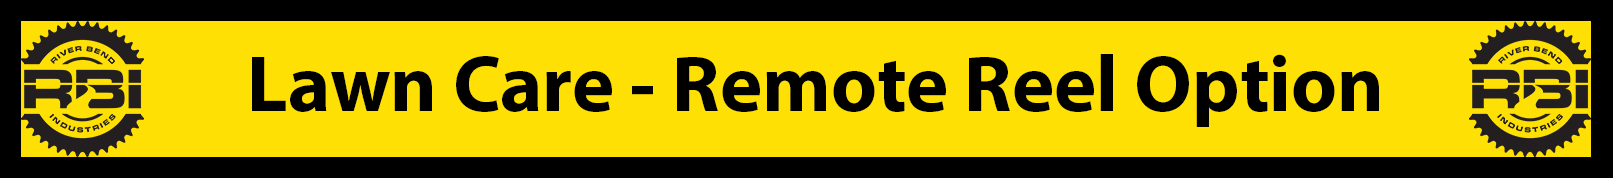 remote-reel-icon.png